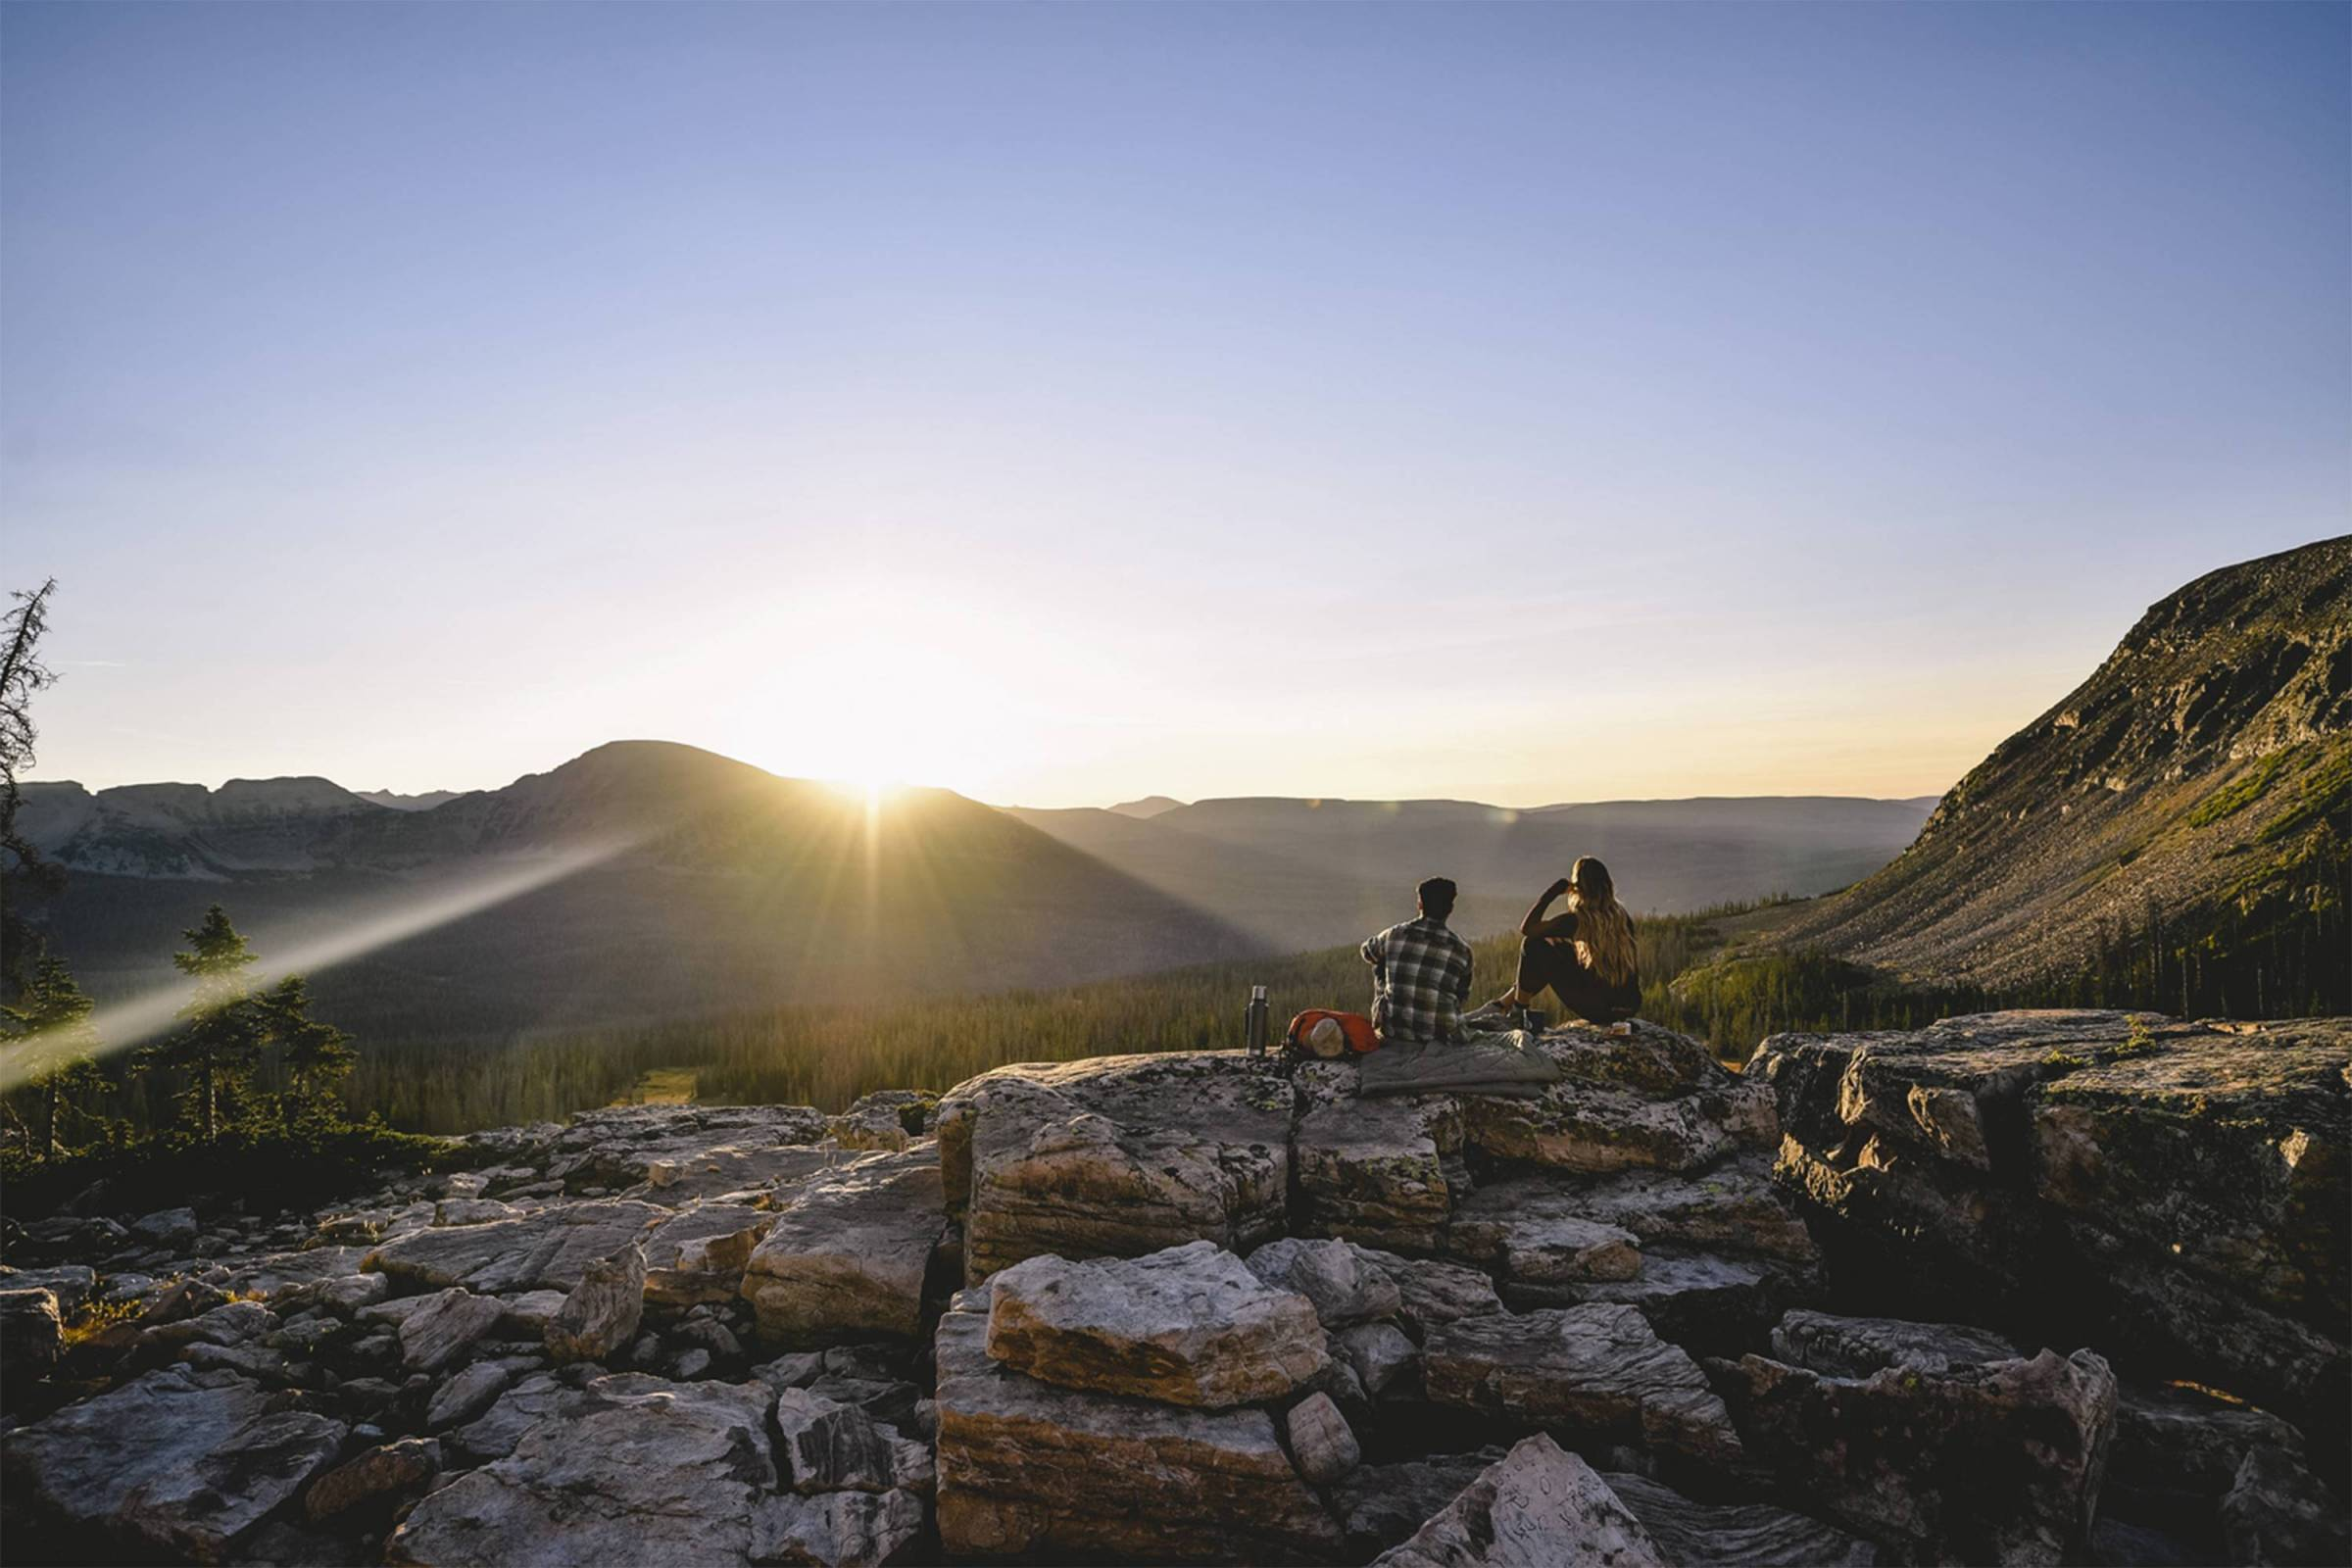 hikers overlooking mountains backcountry feature image sale article